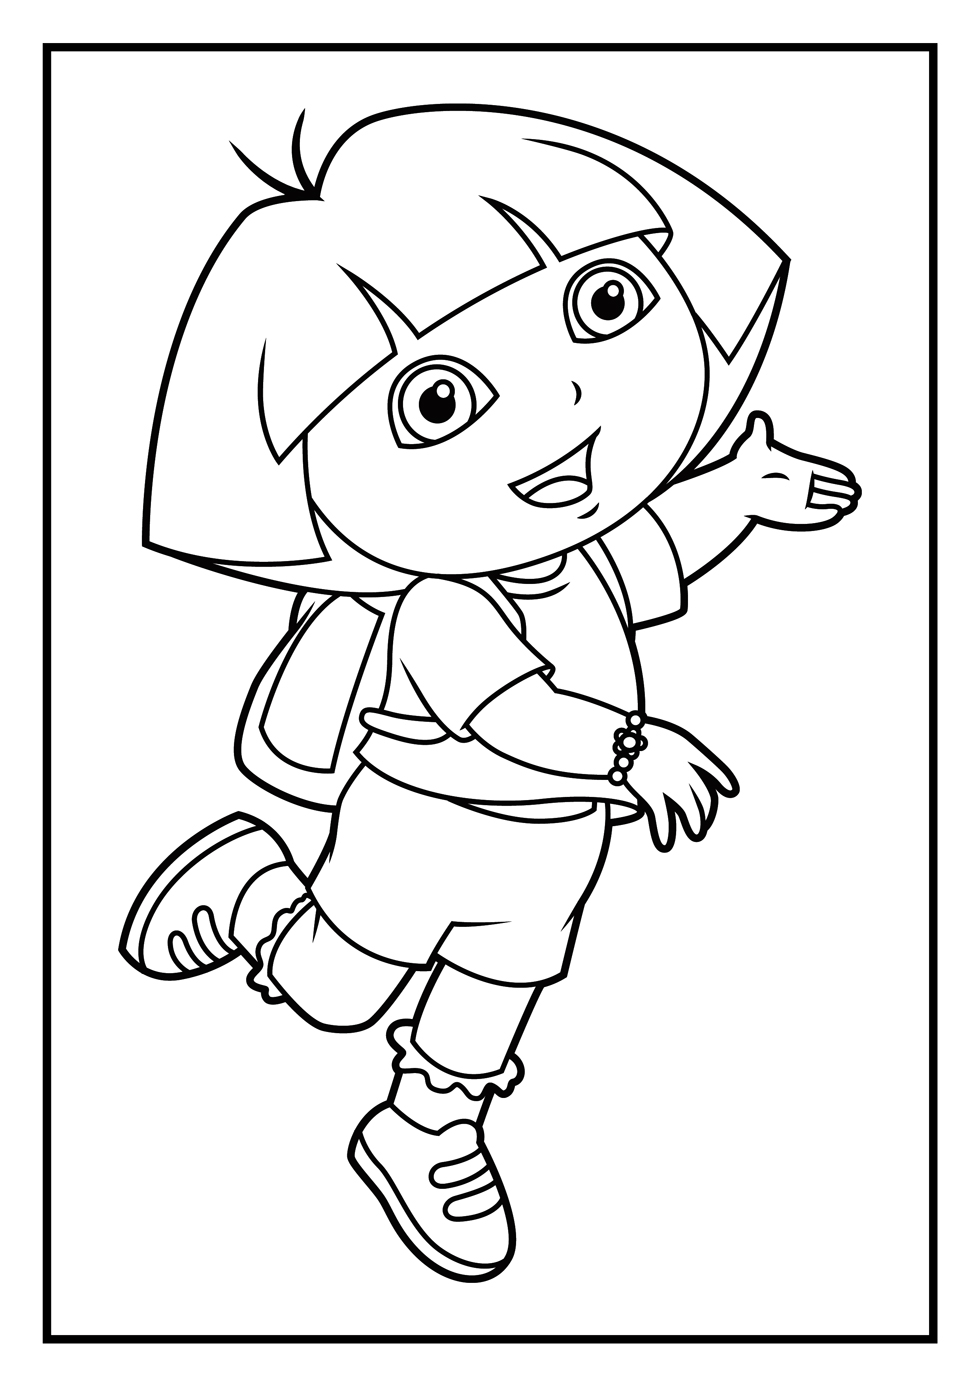 dora colouring pages dora coloring pages diego coloring pages pages dora colouring 1 1